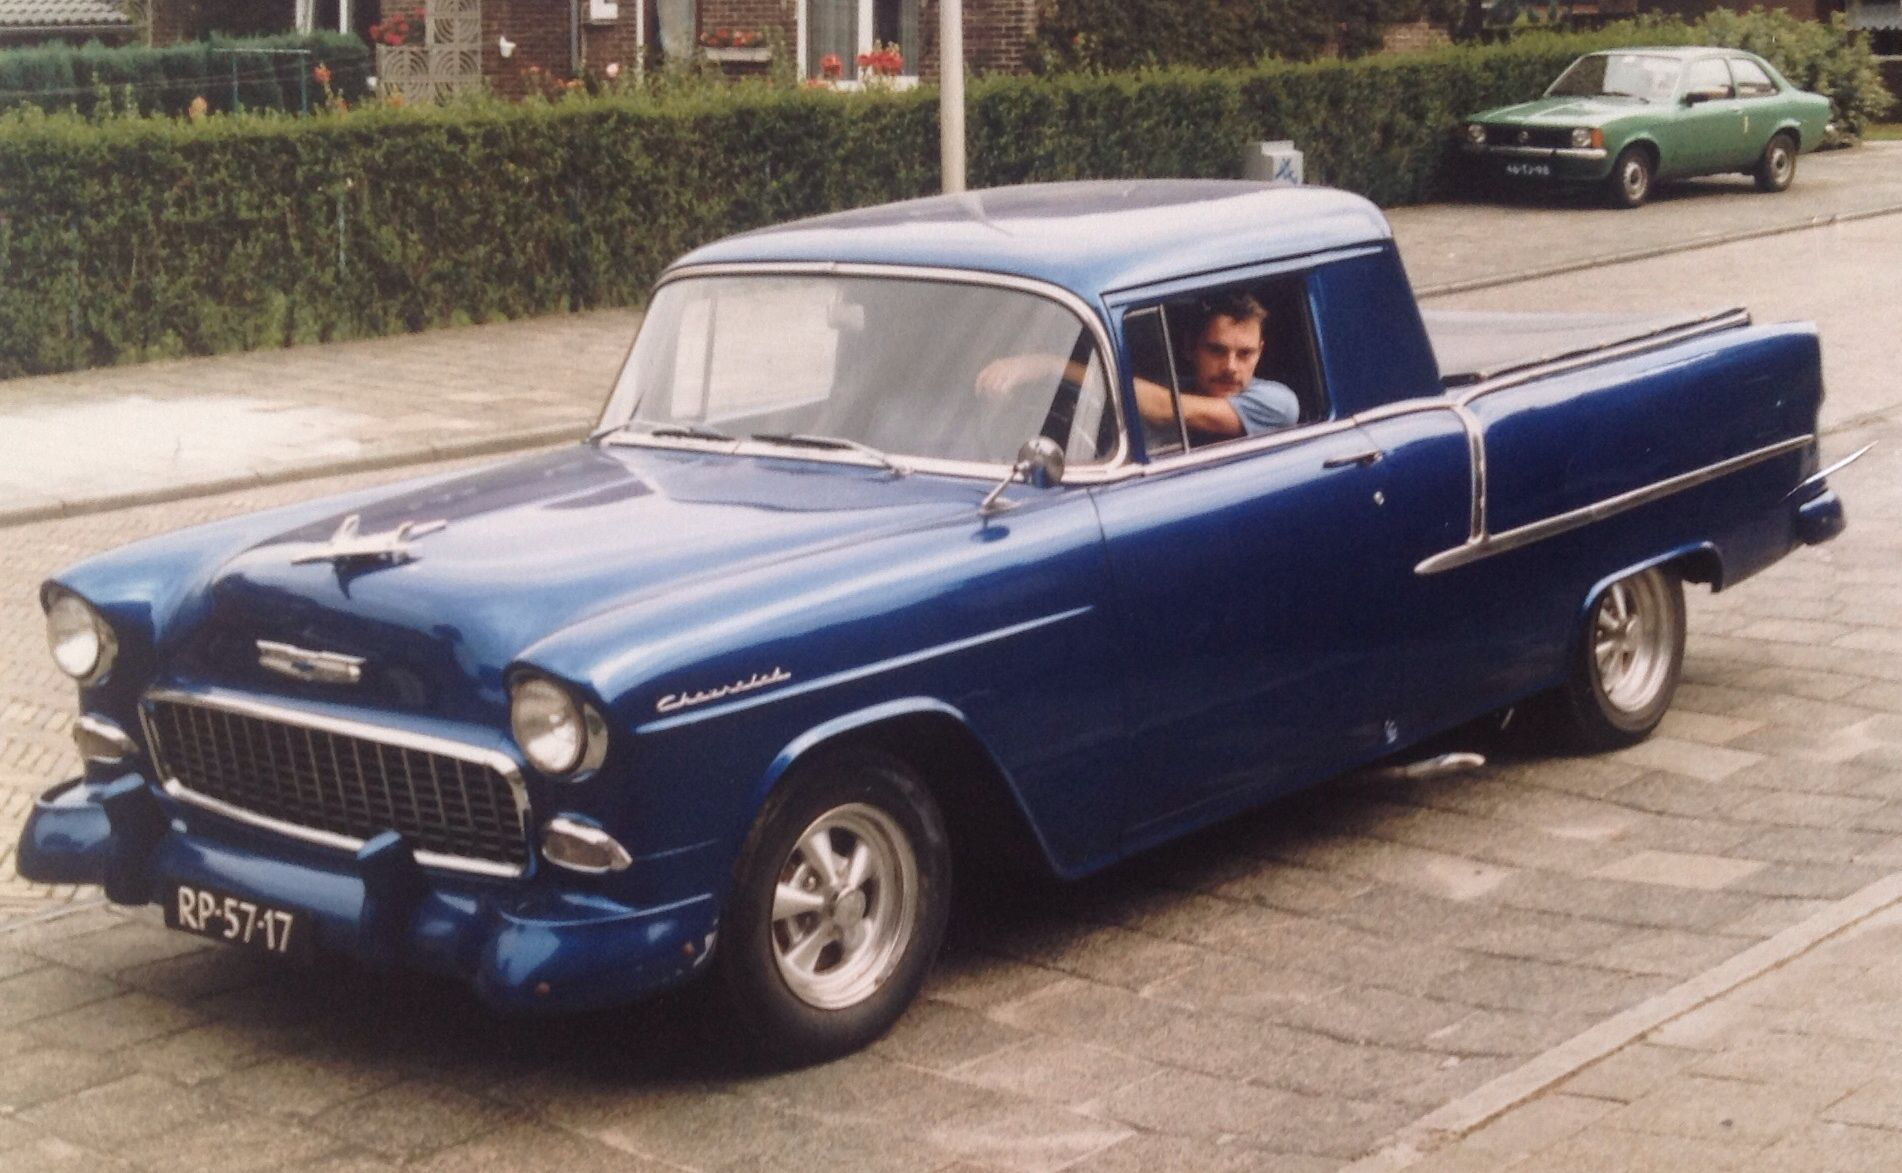 Mine 1955 Chevy BelAir first an 4 doors than a hearse and rebuild